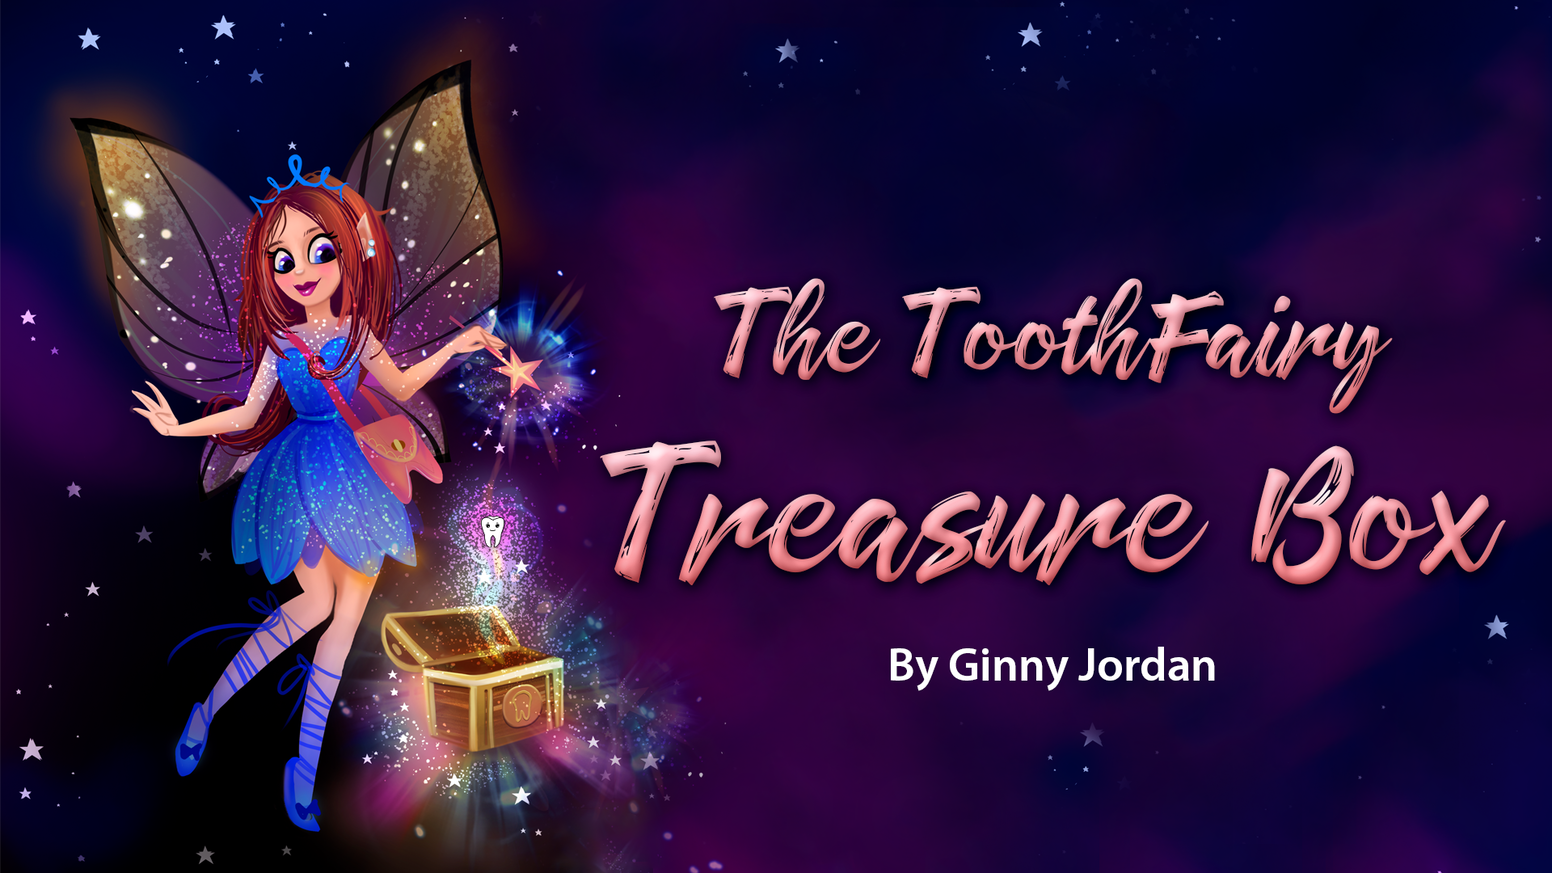 Capture the magic of the Tooth Fairy with this new children's book and toy that is sure to become an instant family tradition!